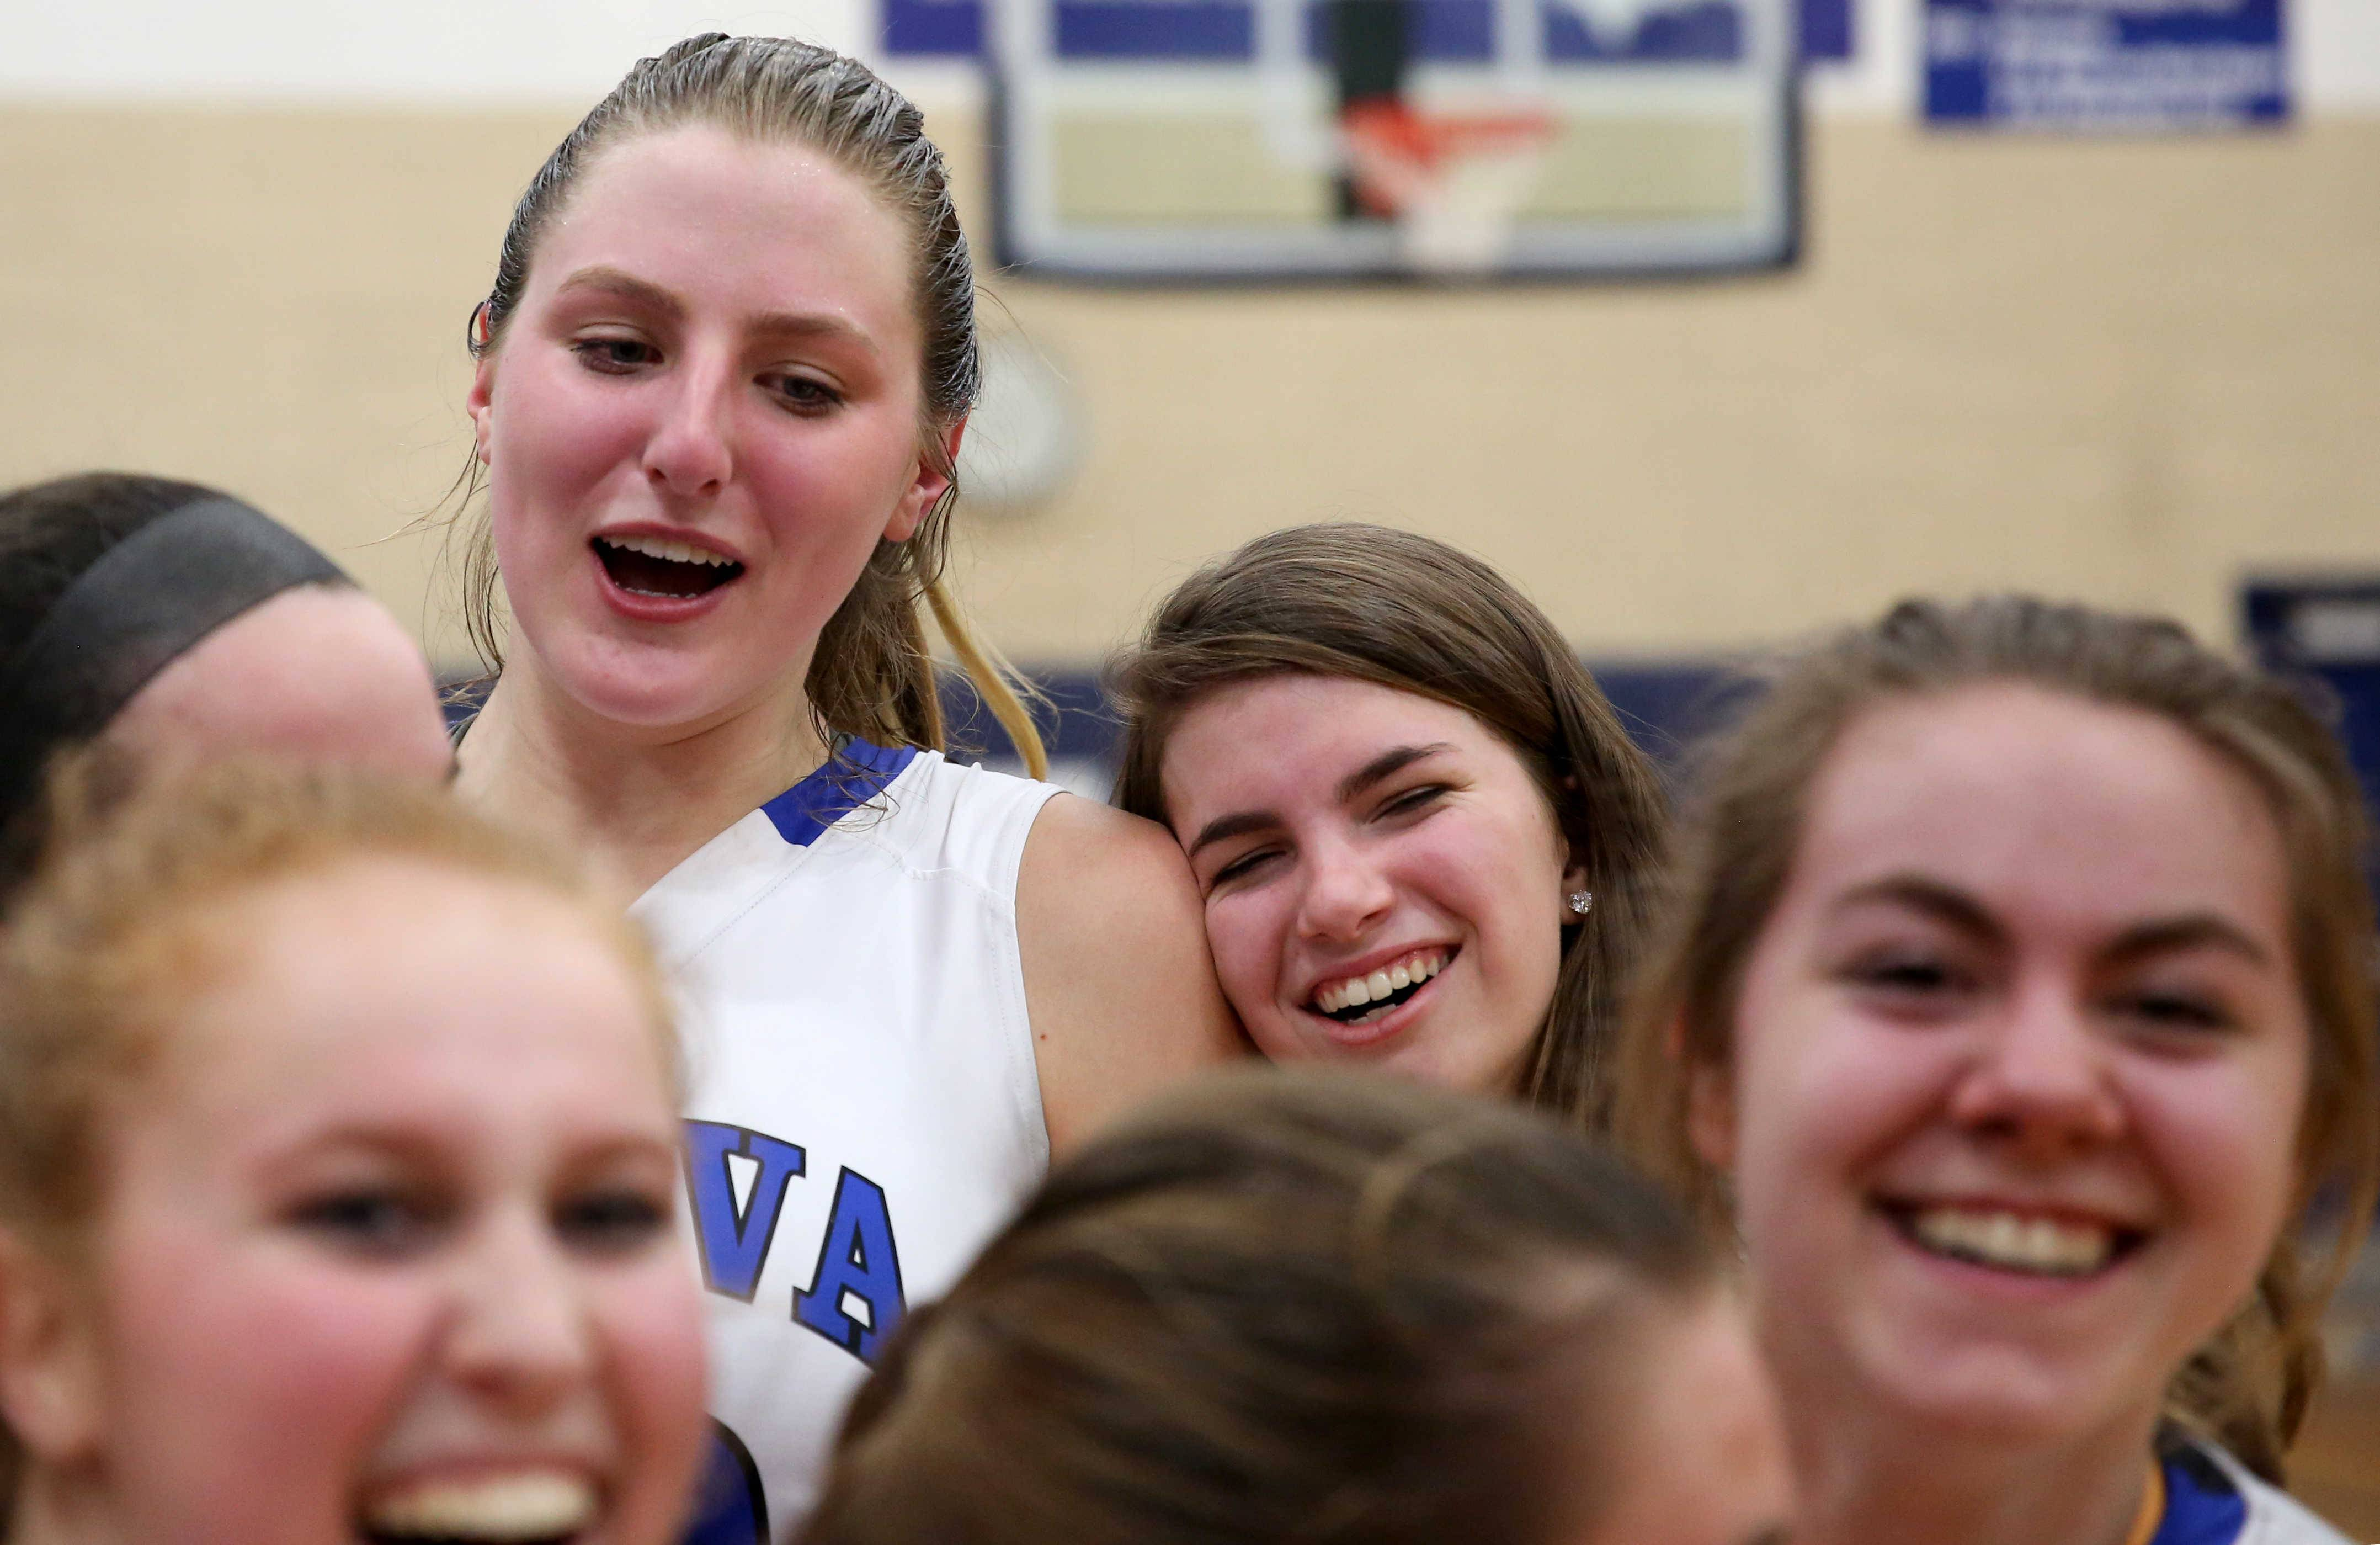 Grace Loberg and the Lady Vikings of Geneva are all smiles after their win over Maine West during girls basketball supersectional action at Addison Trail High School Monday night.